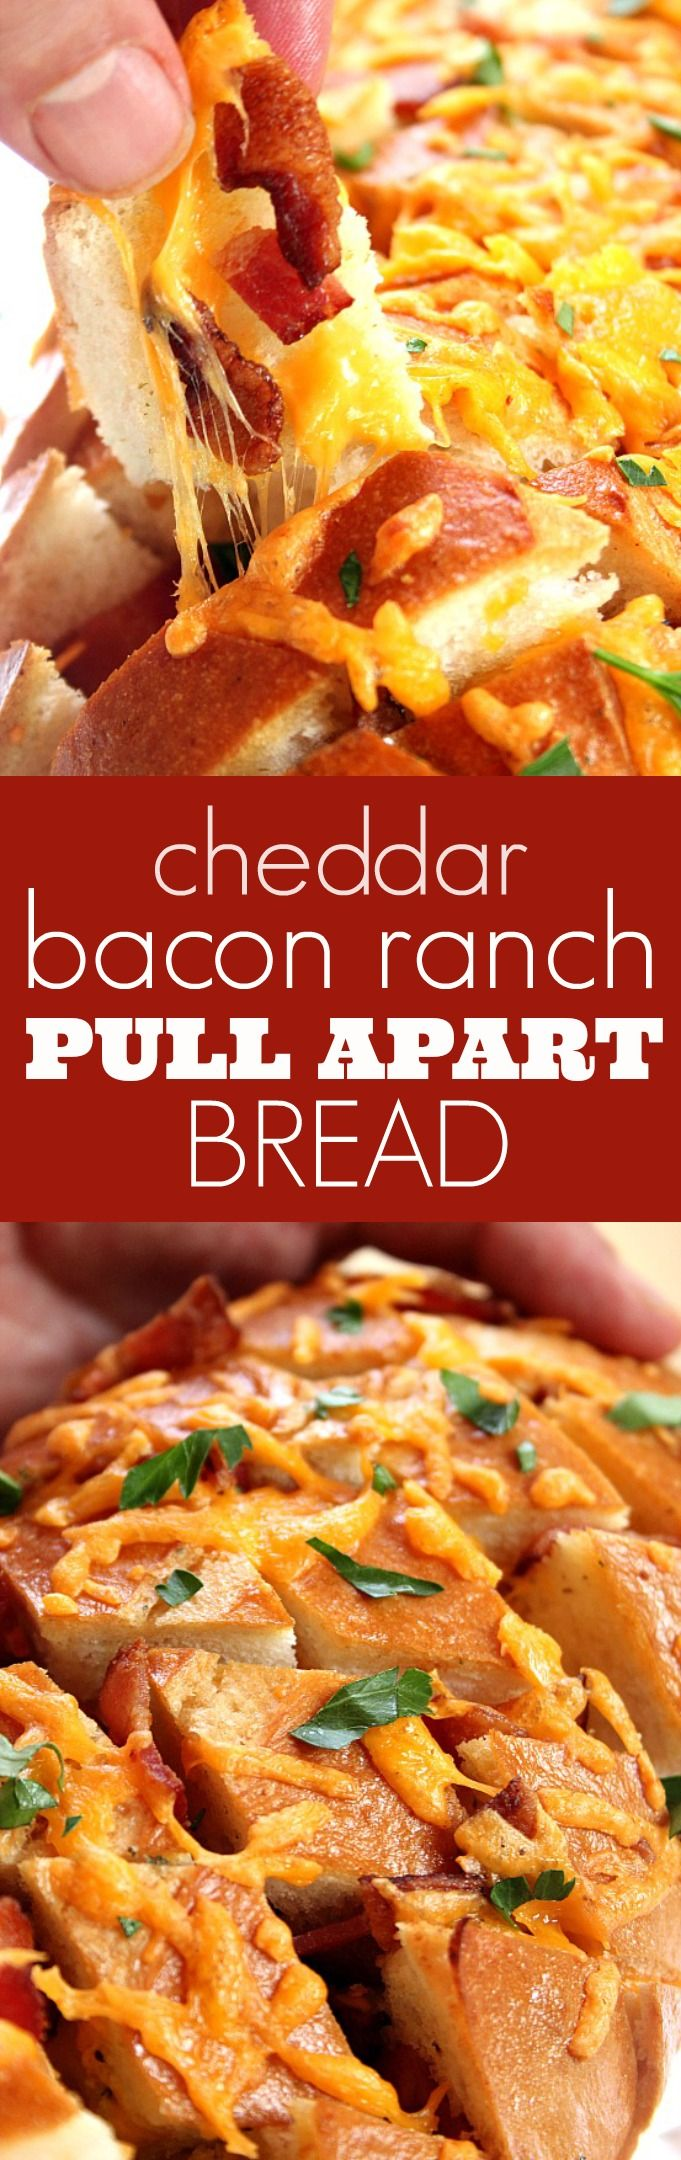 Cheddar Bacon Ranch Pull Apart Bread recipe - crispy top with gooey cheese, crunchy bacon and buttery Ranch in every bite! This pull apart bread is THE appetizer to make!